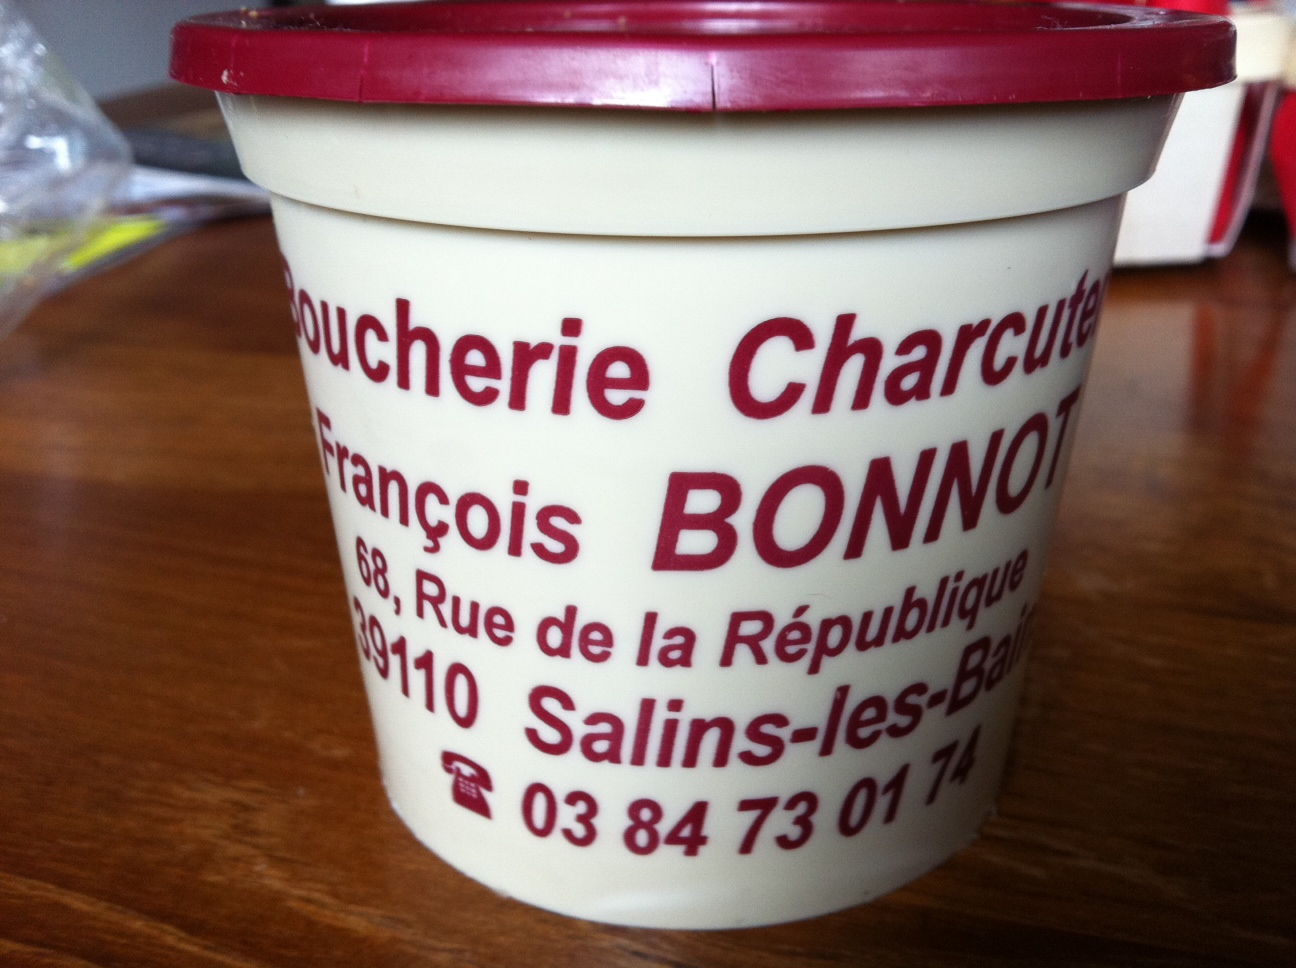 Fran ois bonnot boucherie charcuterie producteur jura for Boucherie jura